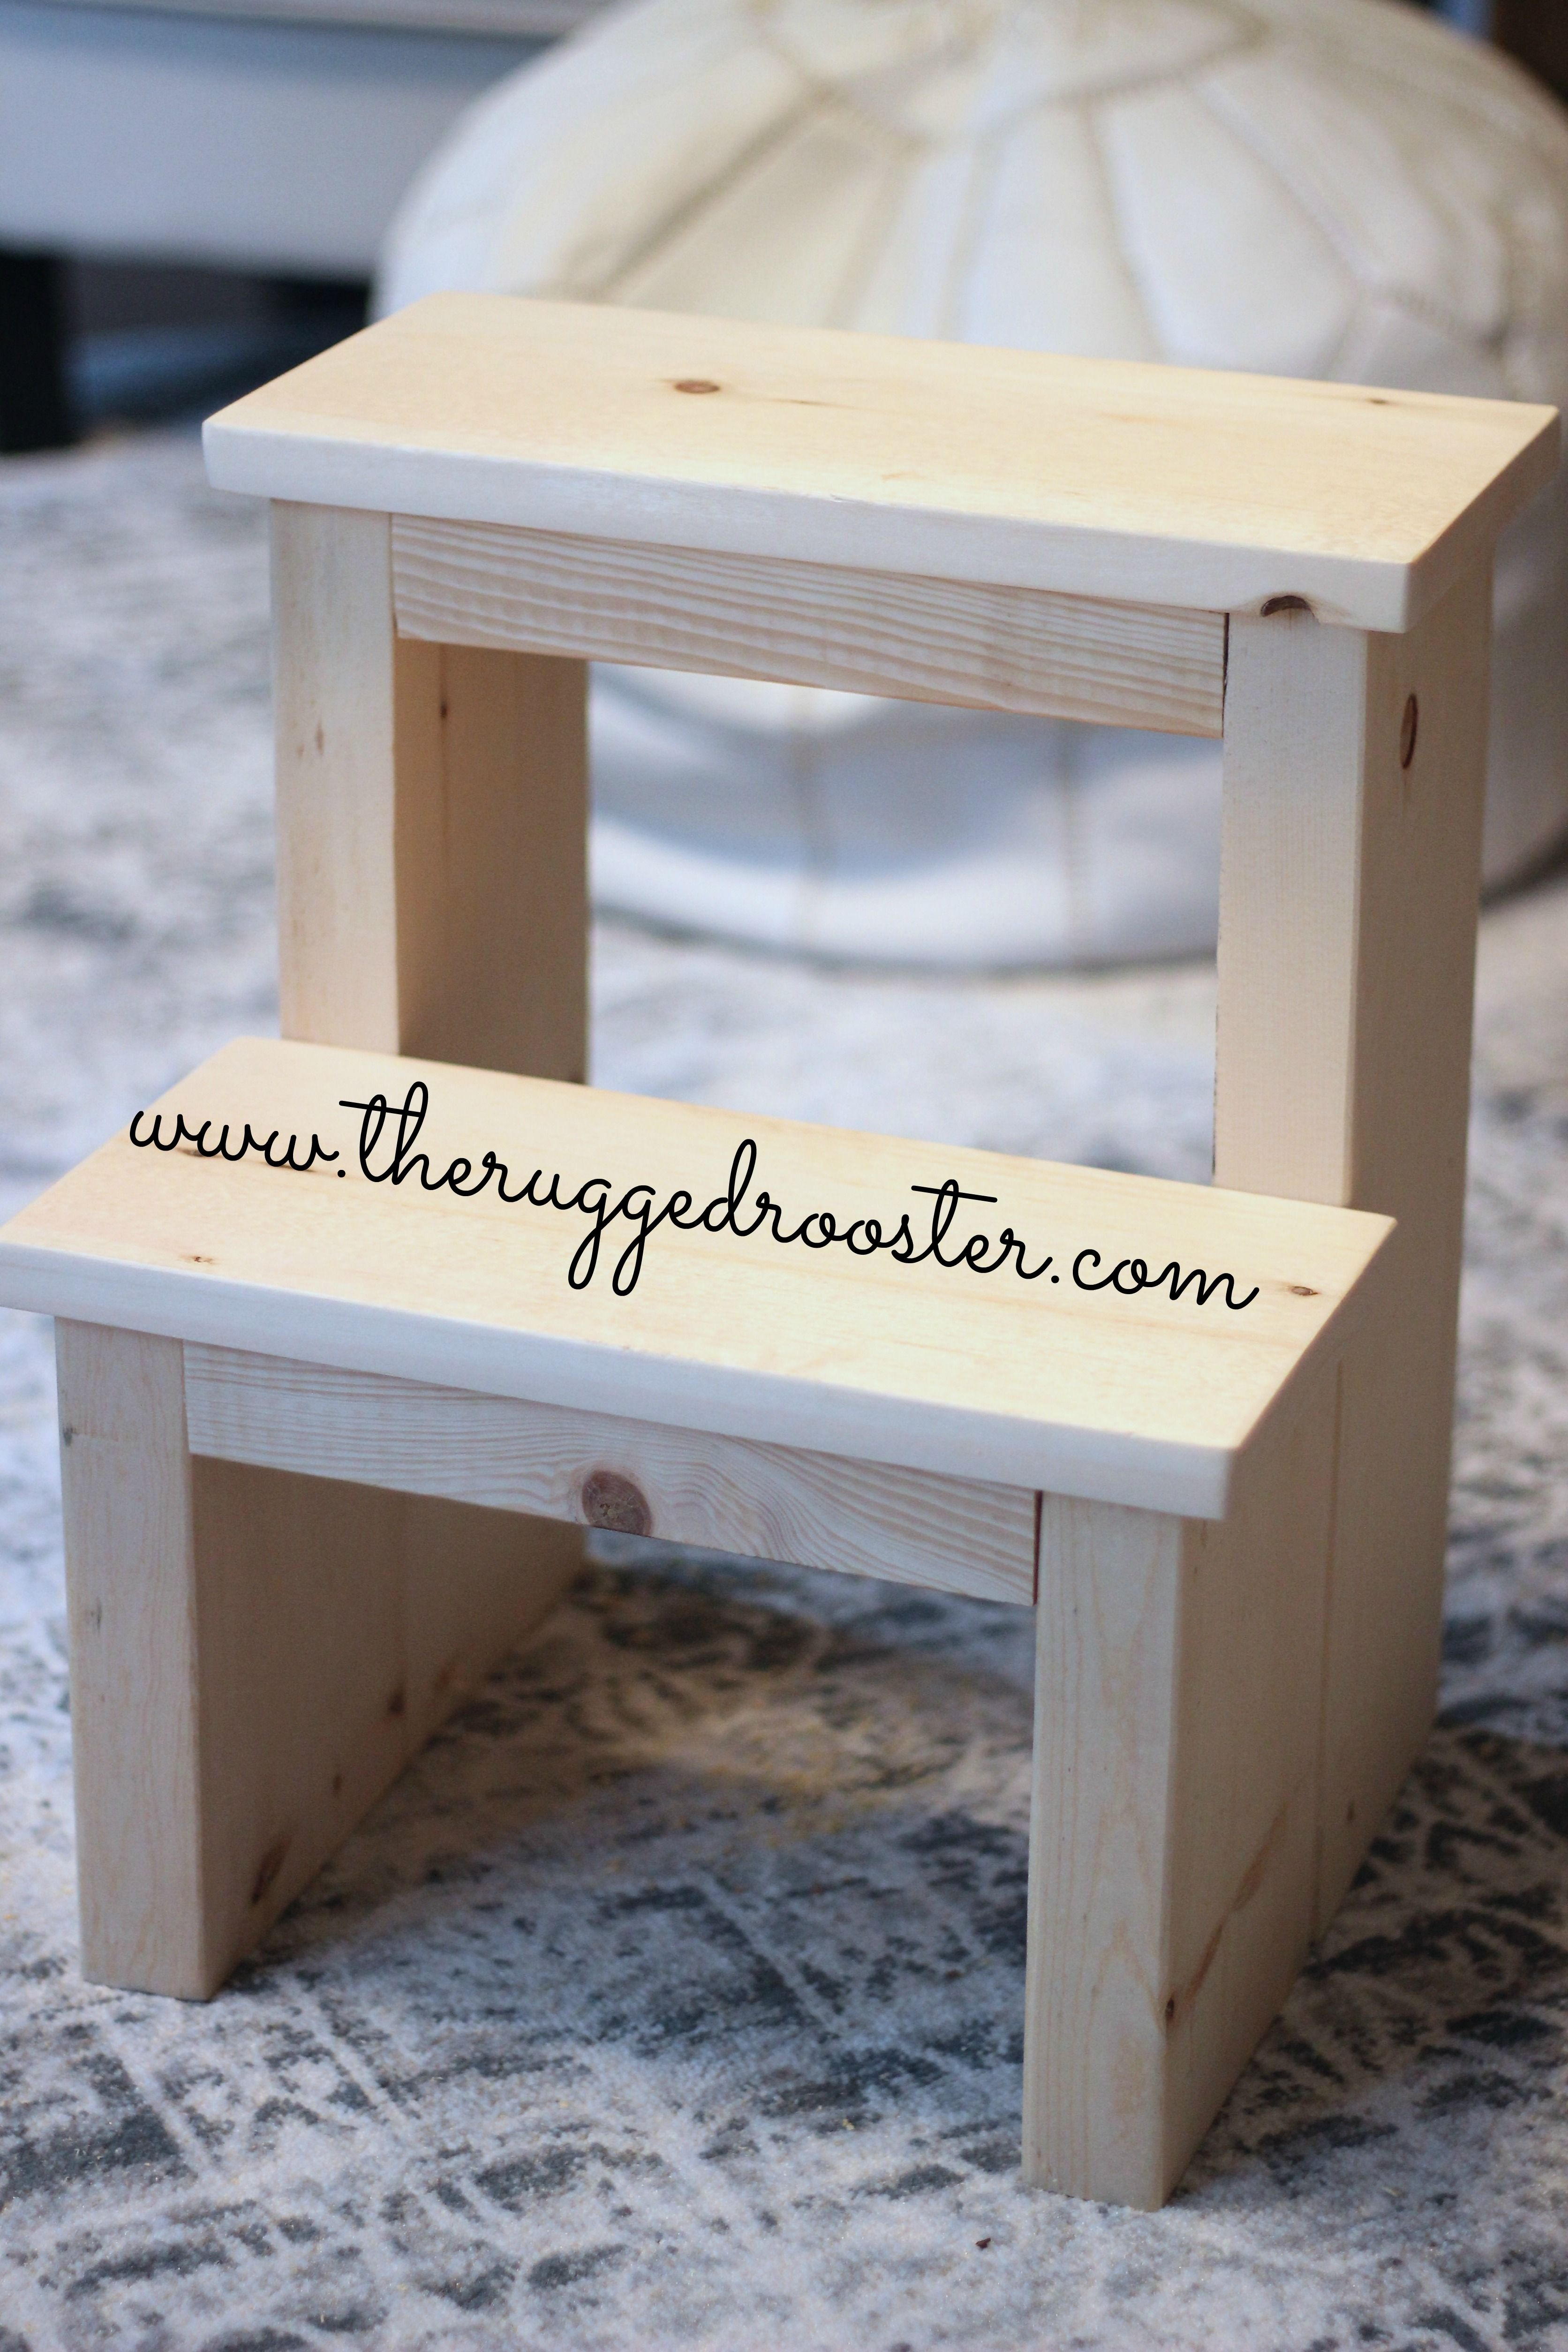 Learn How To Build The Easiest Diy Step Stool In 2020 Step Stool Diy Diy Stool Wooden Step Stool